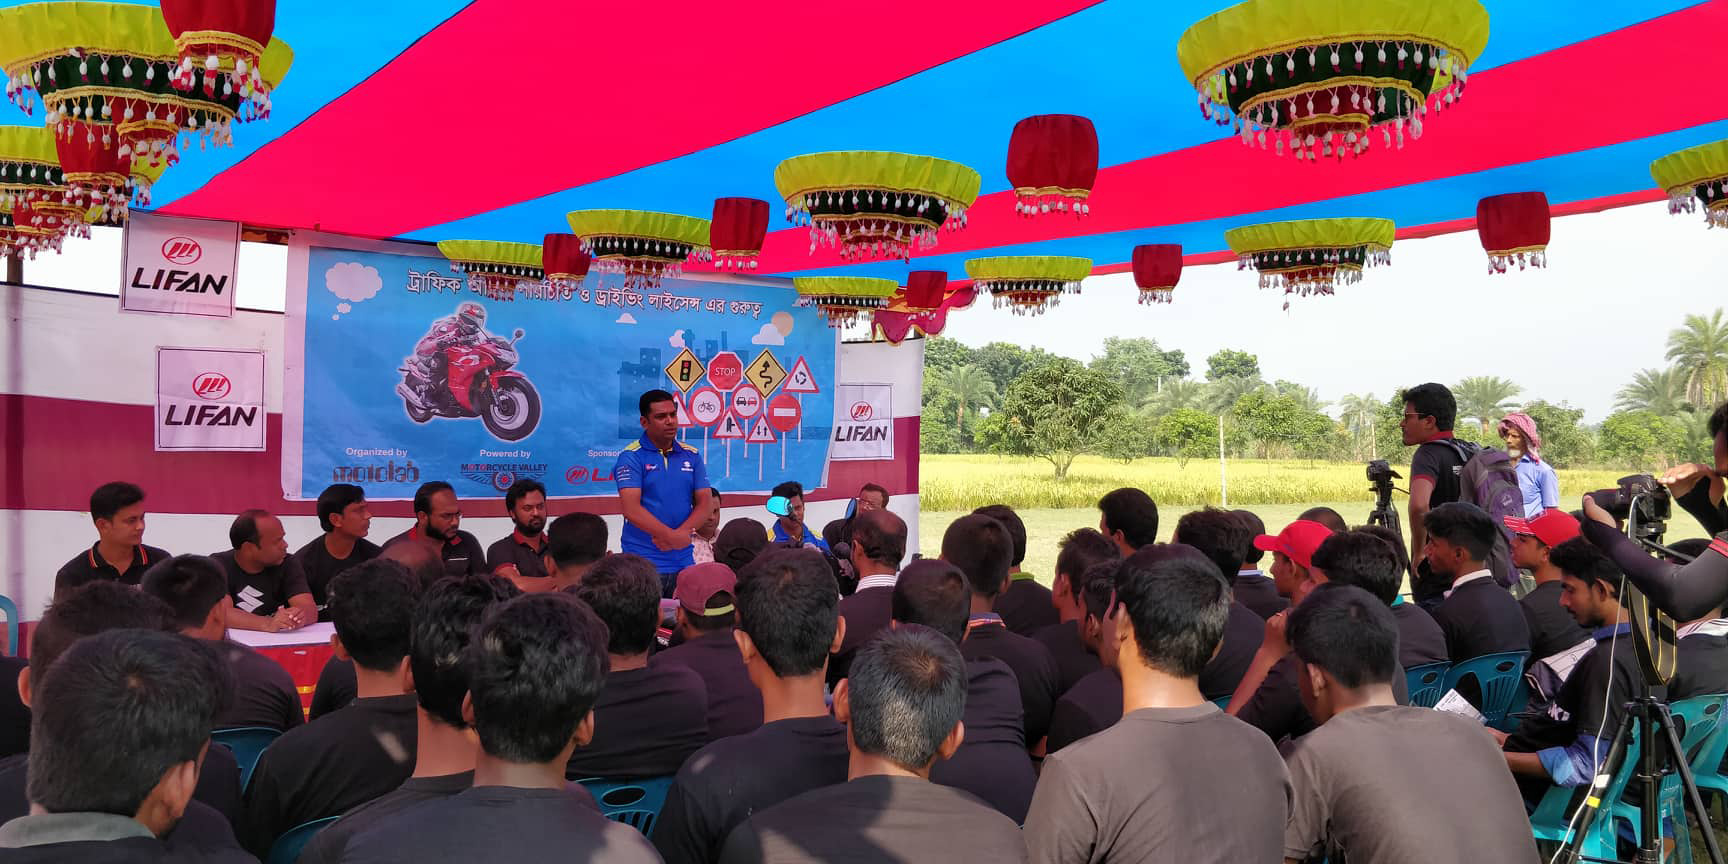 Suzuki-Hayate-Test-Ride-Event-at-MOTOLAB-Polash